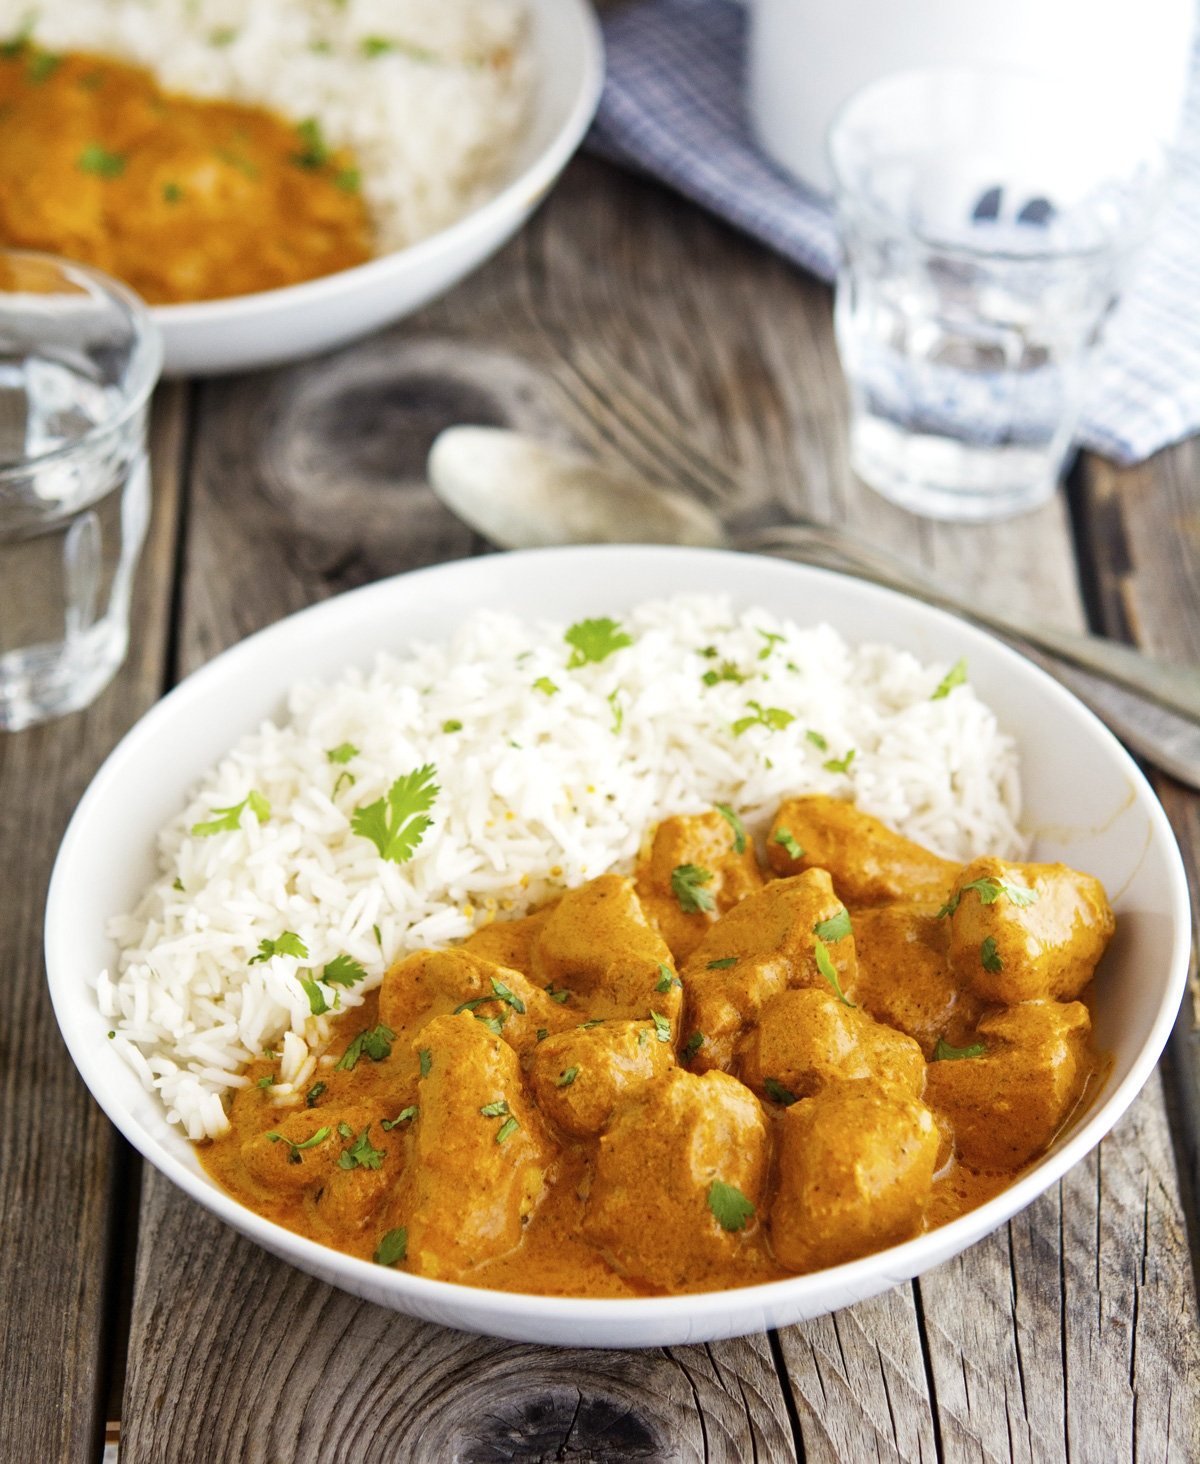 The iron you easy creamy crock pot butter chicken murgh makhani easy creamy crock pot butter chicken murgh makhani forumfinder Image collections